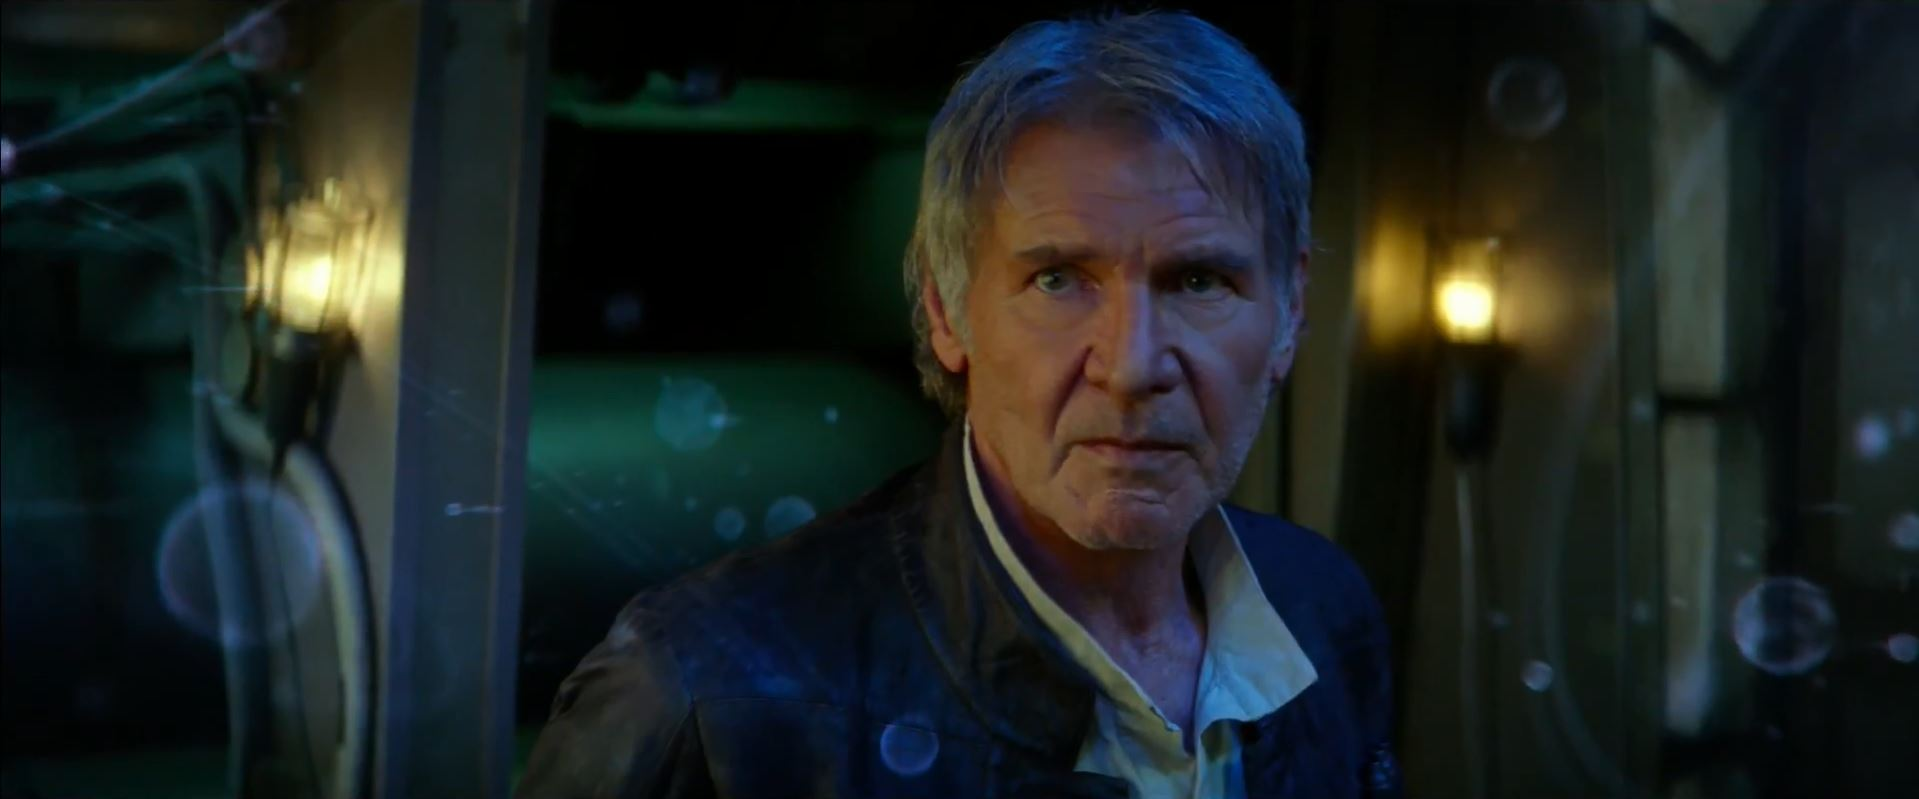 Han Solo talks to Finn and Rey. The Force Awakens trailer released